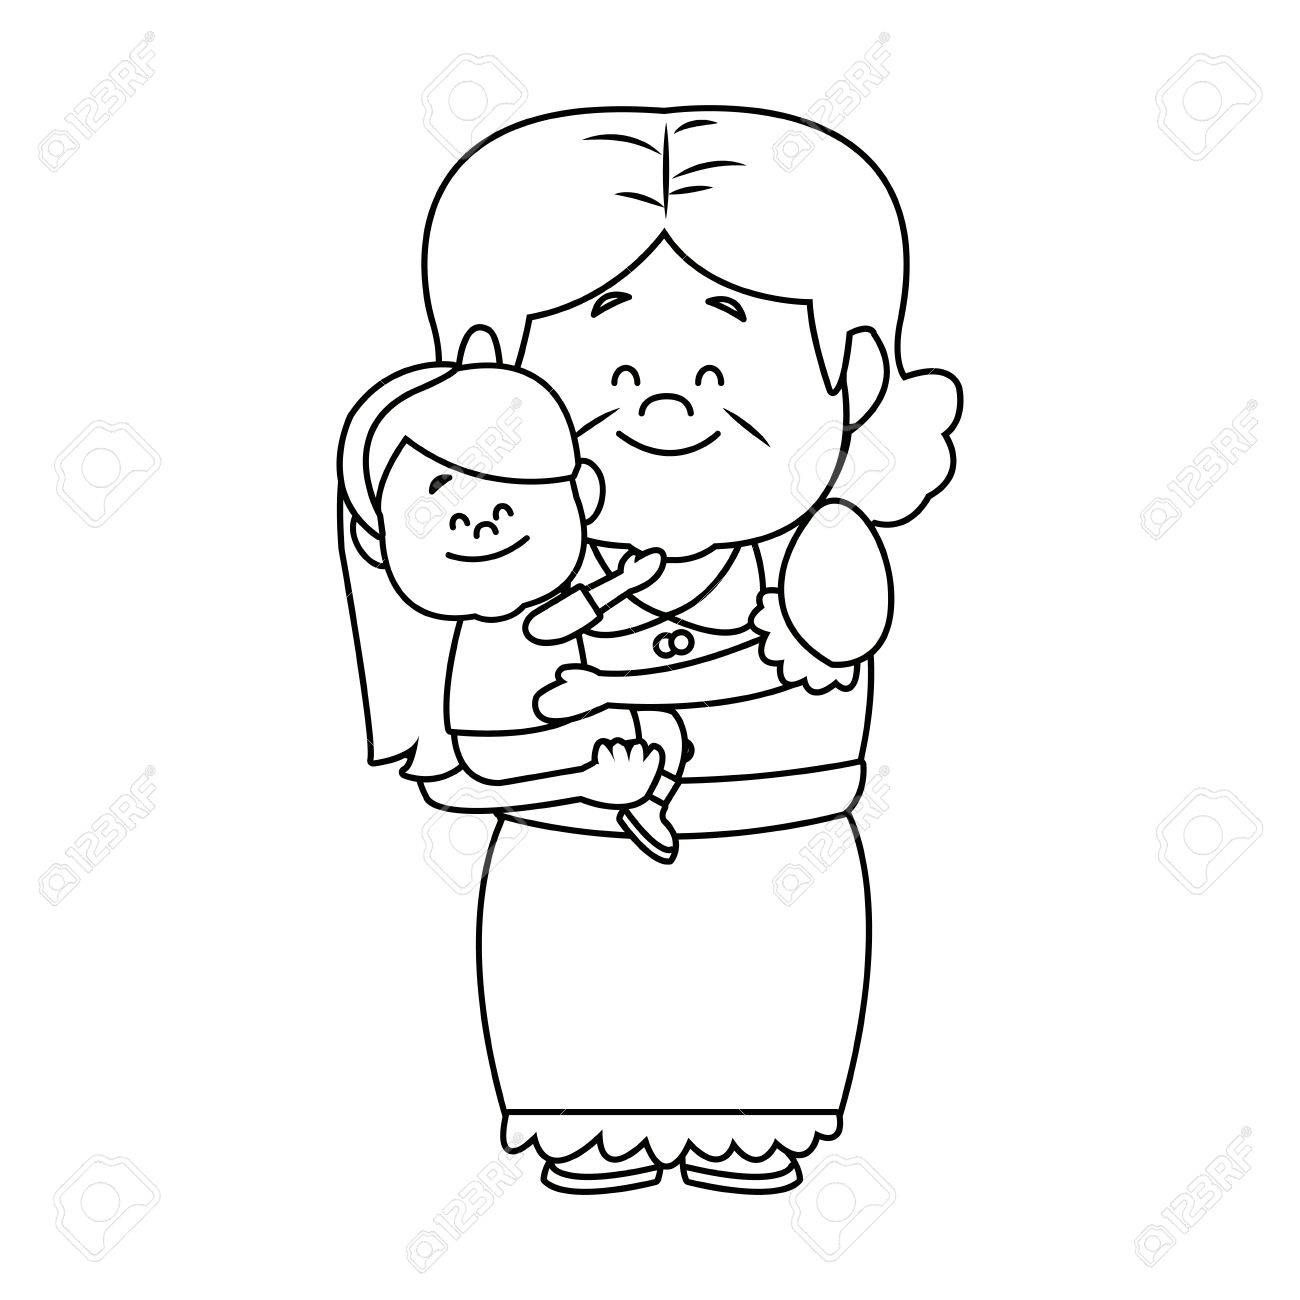 little girl and grandmother together family vector illustration - 82261988